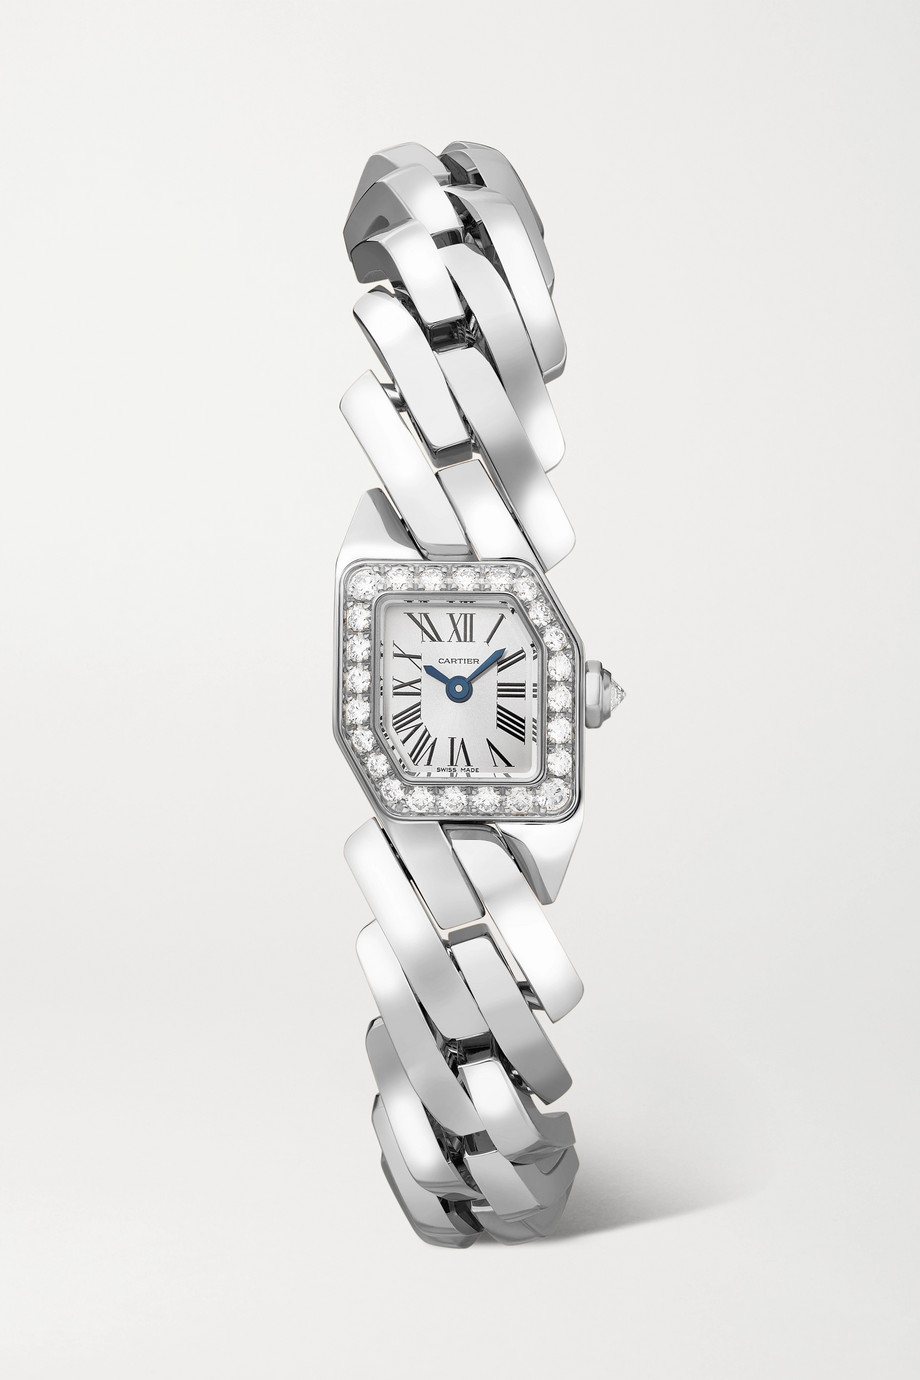 Cartier Maillon de Cartier 16mm 18-karat white gold diamond watch